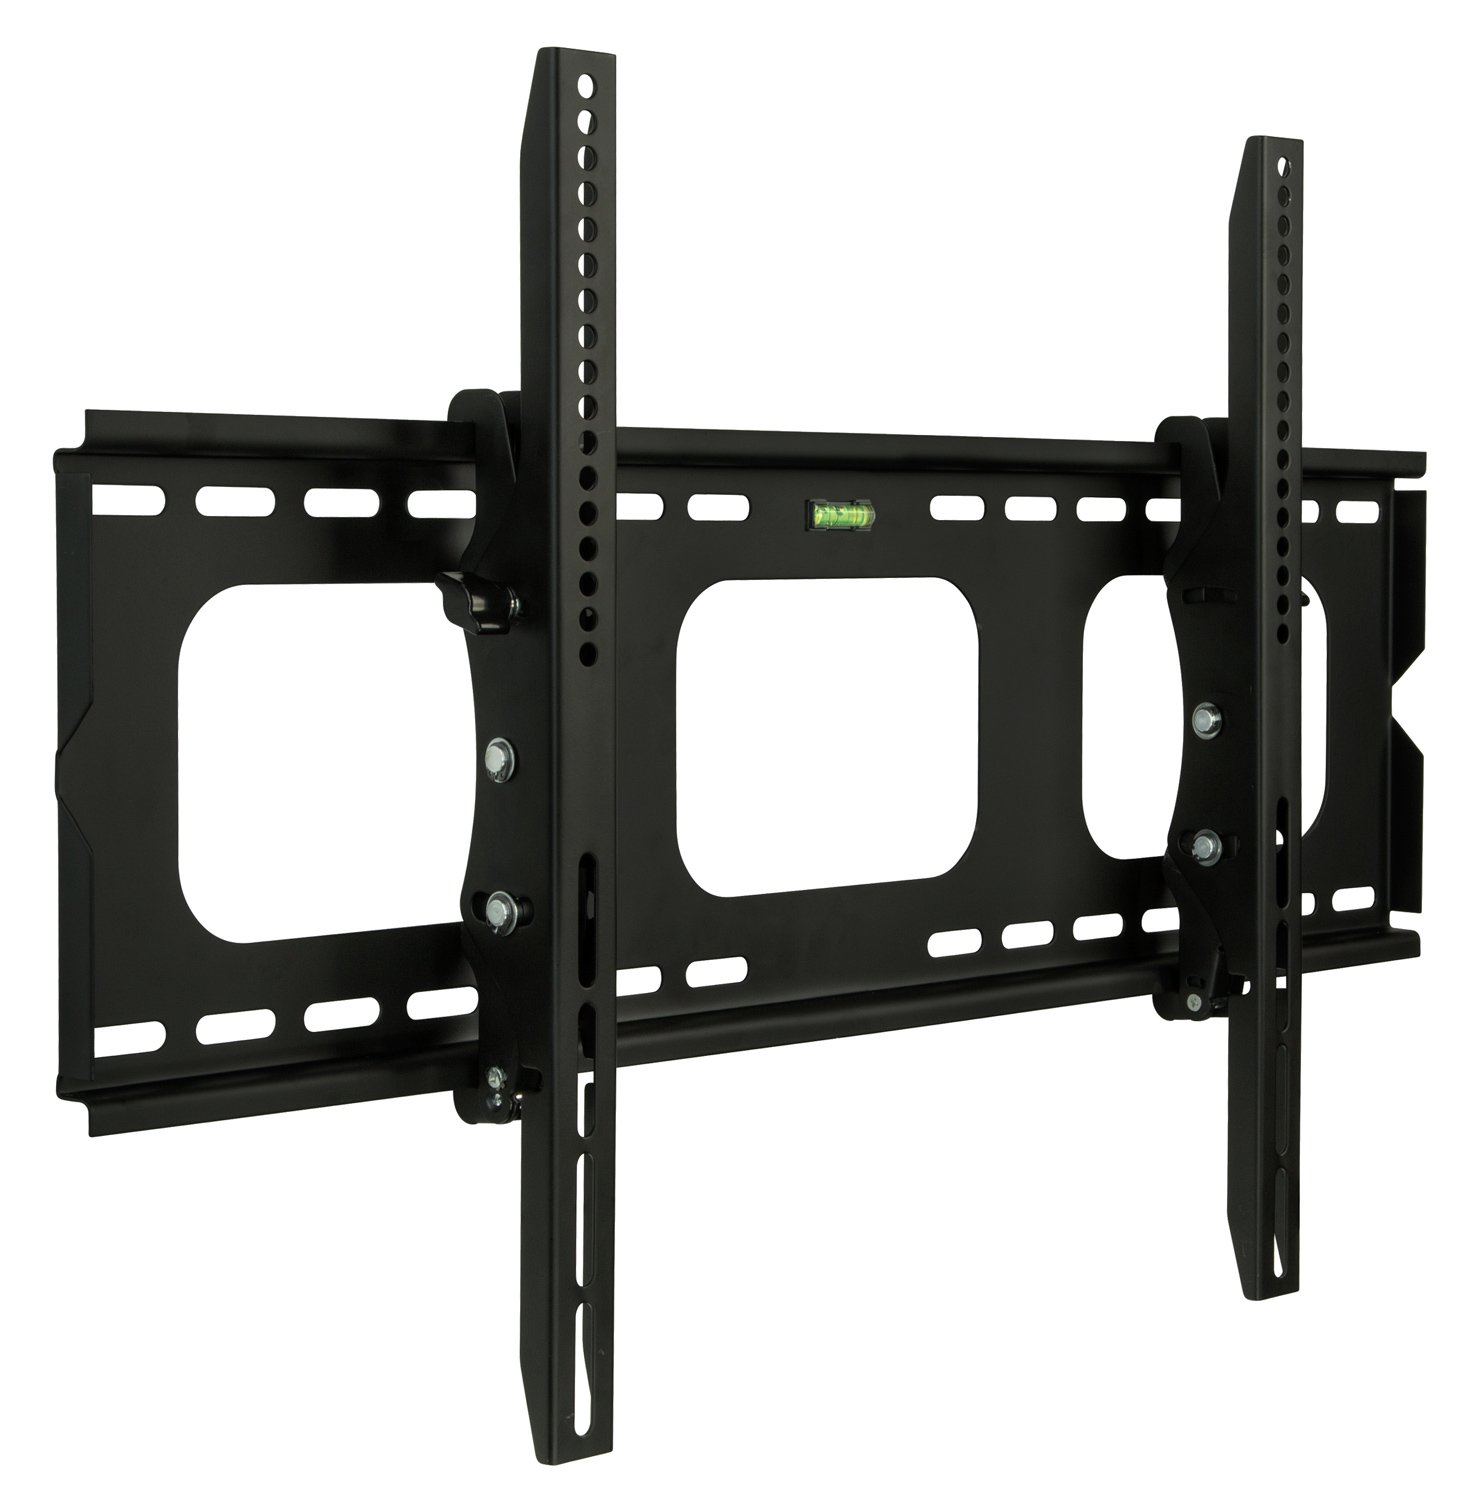 """Mount-It! MI-303-CBL Tilt TV Wall Mount Bracket for LCD, LED, or Plasma Flat Screens, 32"""" – 60"""" Screen Sizes, HDMI Cable Included, Black"""